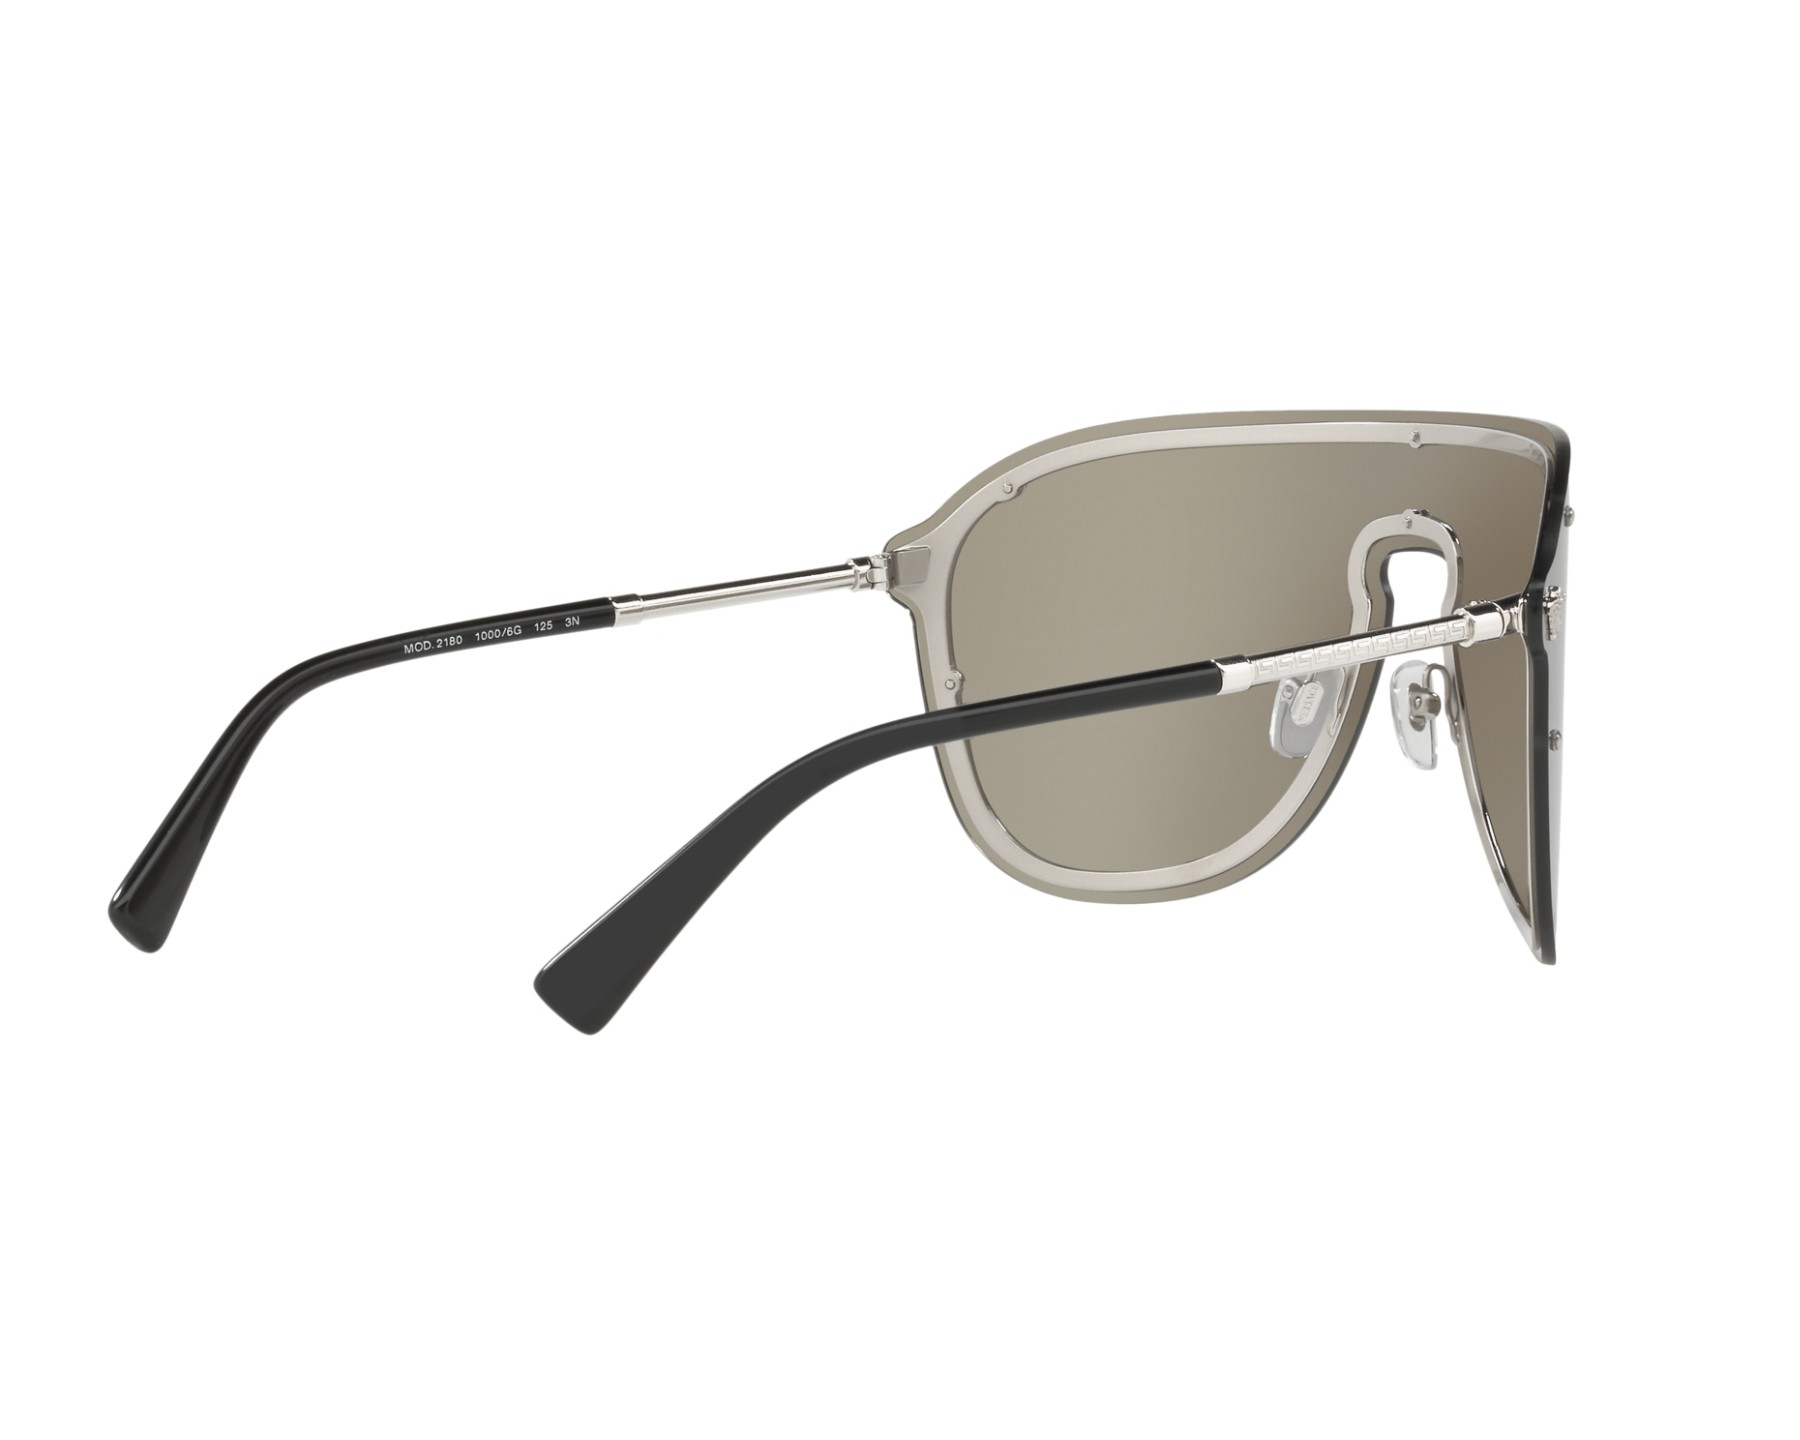 7d1bed2b98 Sunglasses Versace VE-2180 10006G 44- Silver 360 degree view 9